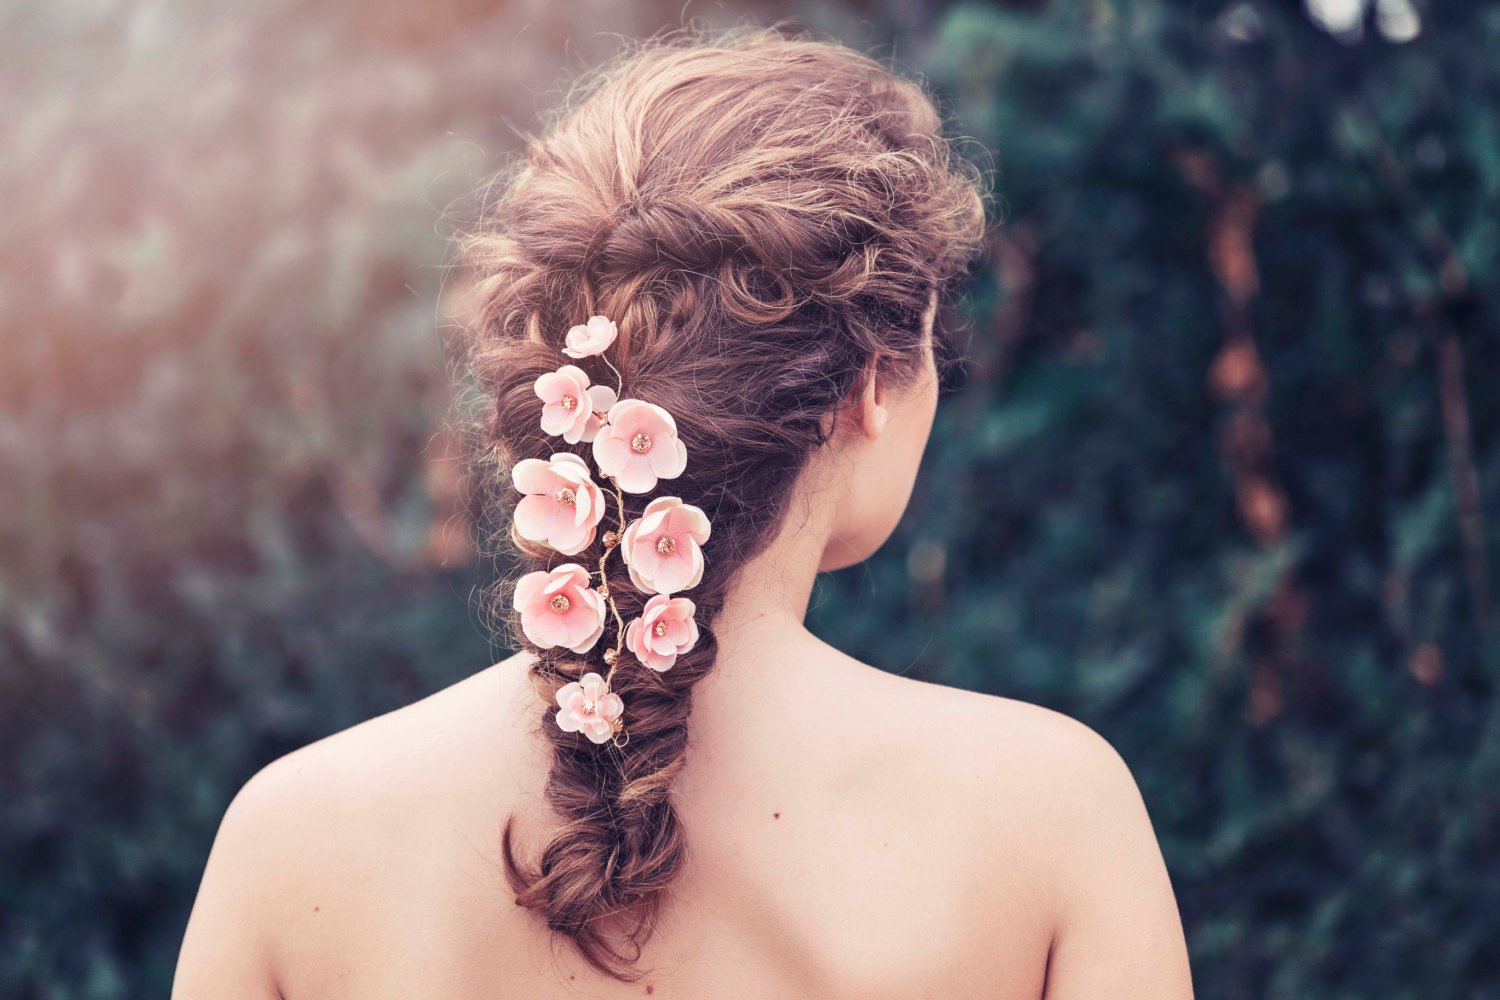 Bridal hair vines for weddings | by Gadegaard Design | photo by Tina Liv | http://emmalinebride.com/bride/bridal-hair-vines-for-weddings/